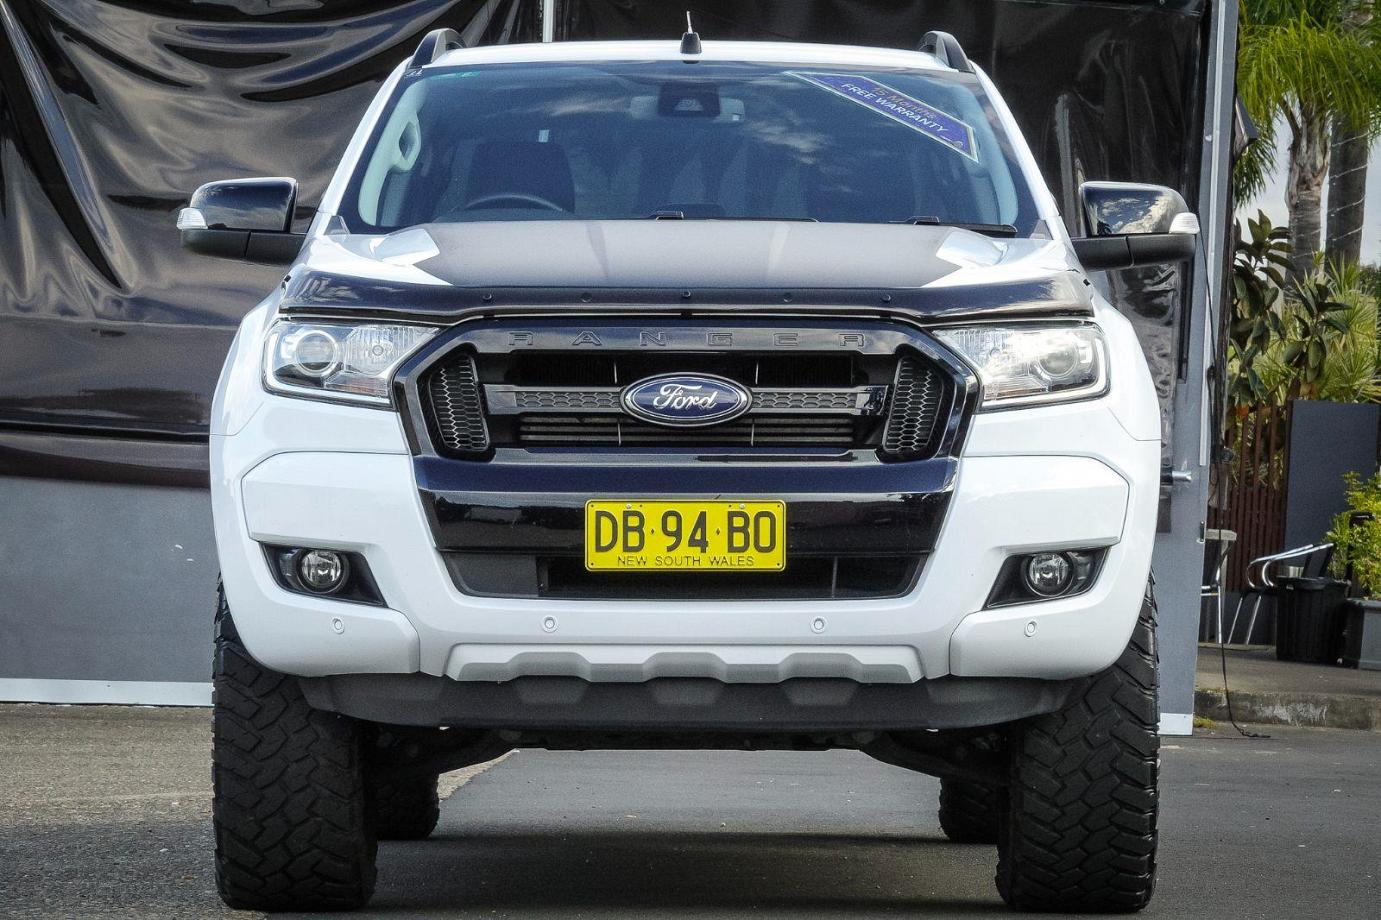 2017 Ford Ranger PX MkII MY18 FX4. Utility Double Cab 4dr Man 6sp 4x4 995kg 3.2DT